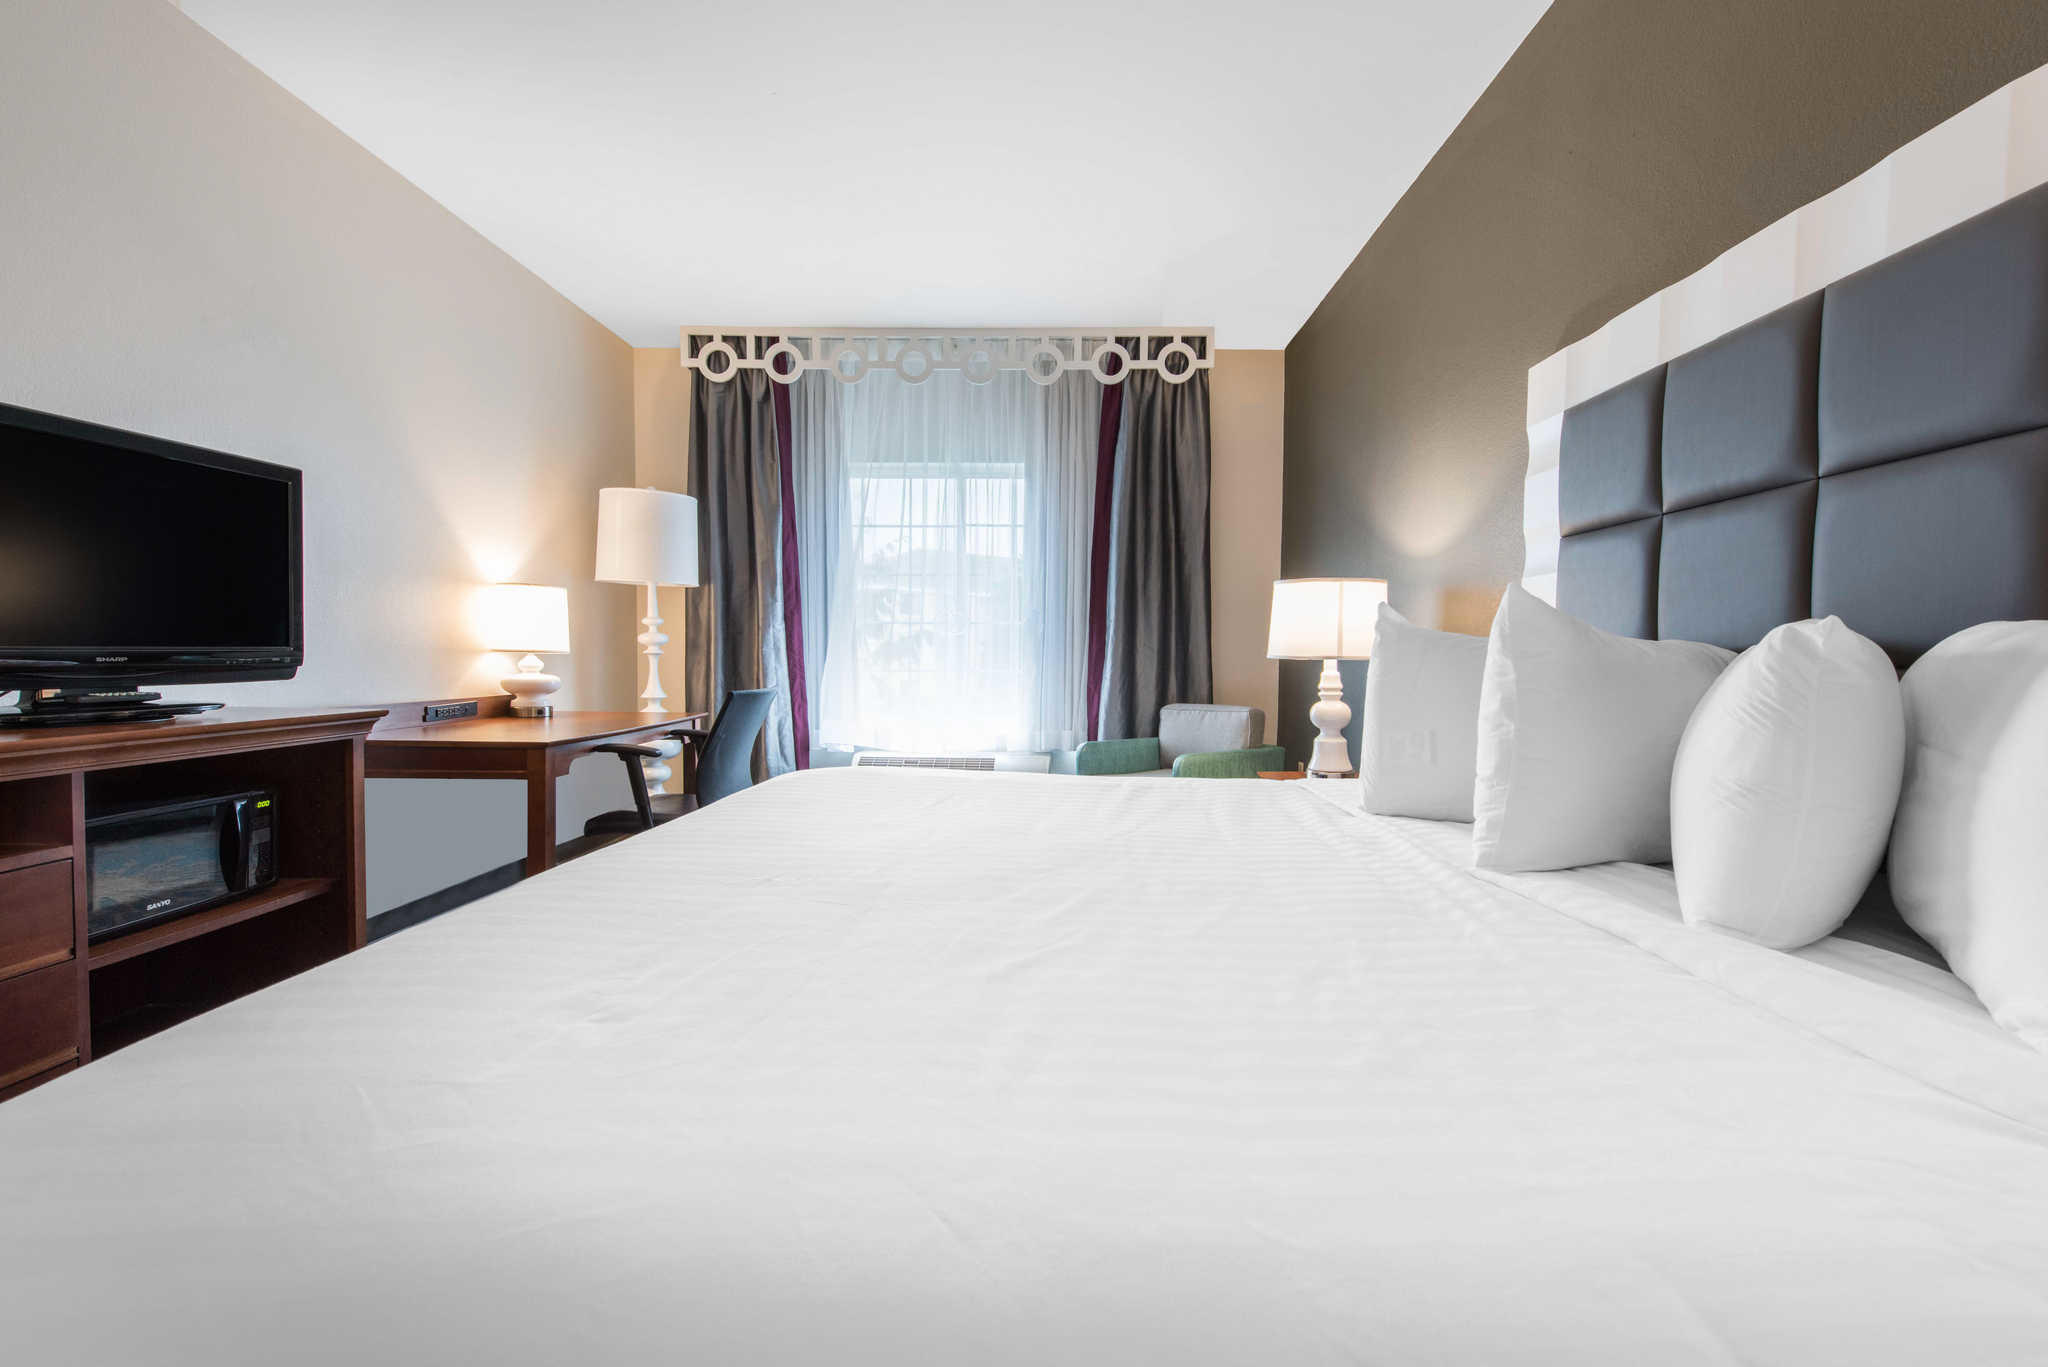 Solstice Hotel Erie Pa Reviews